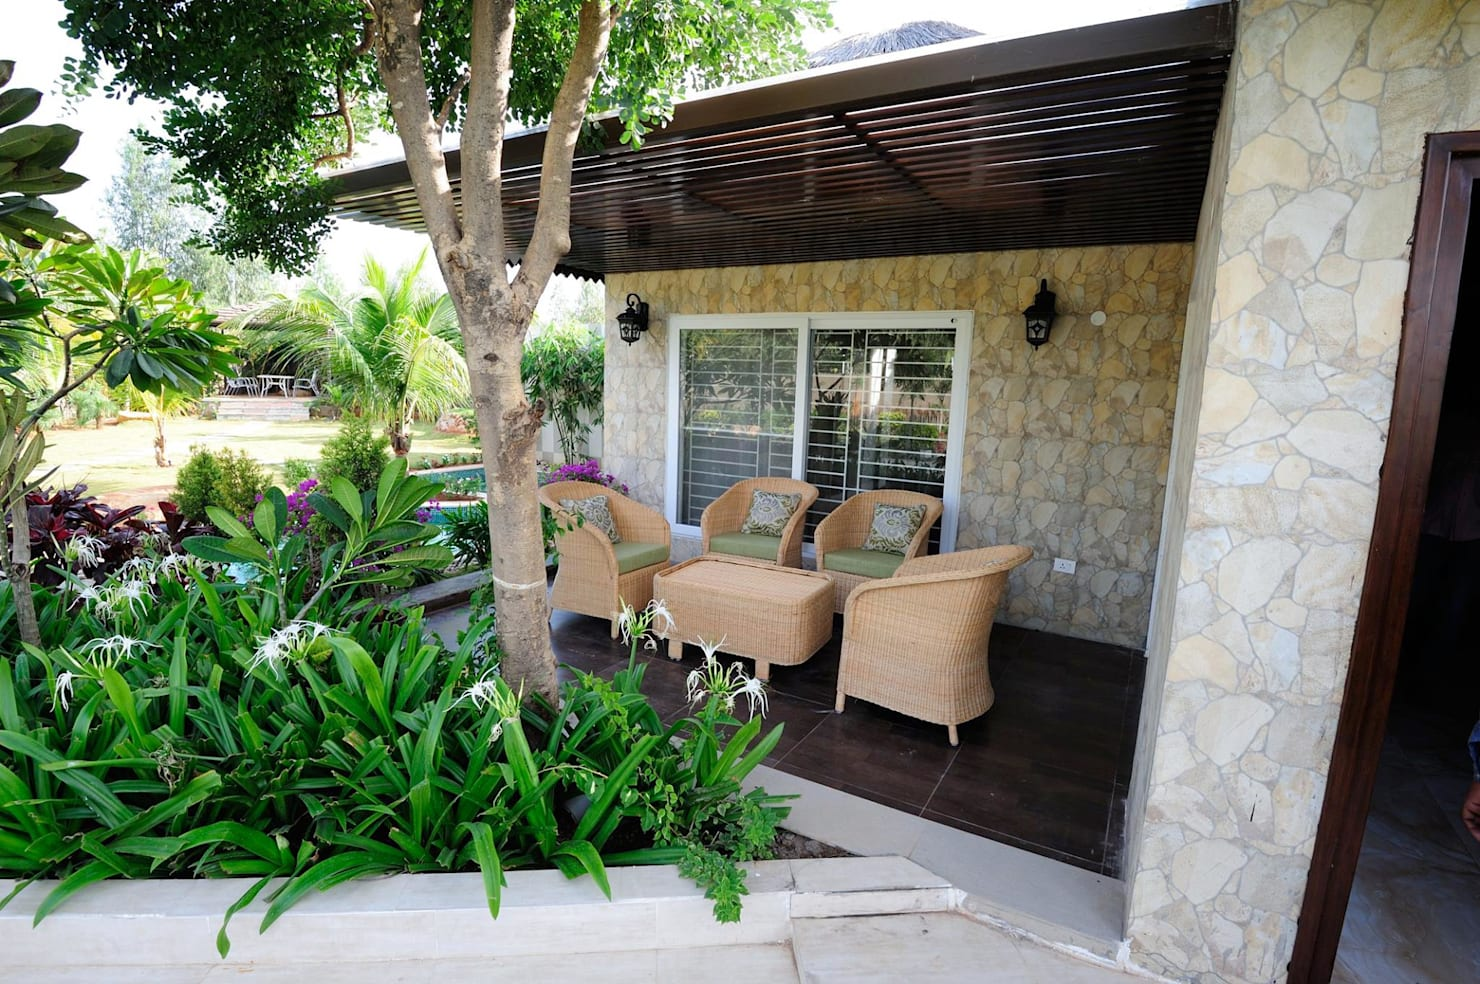 Home improvement: 10 pergola designs to recreate